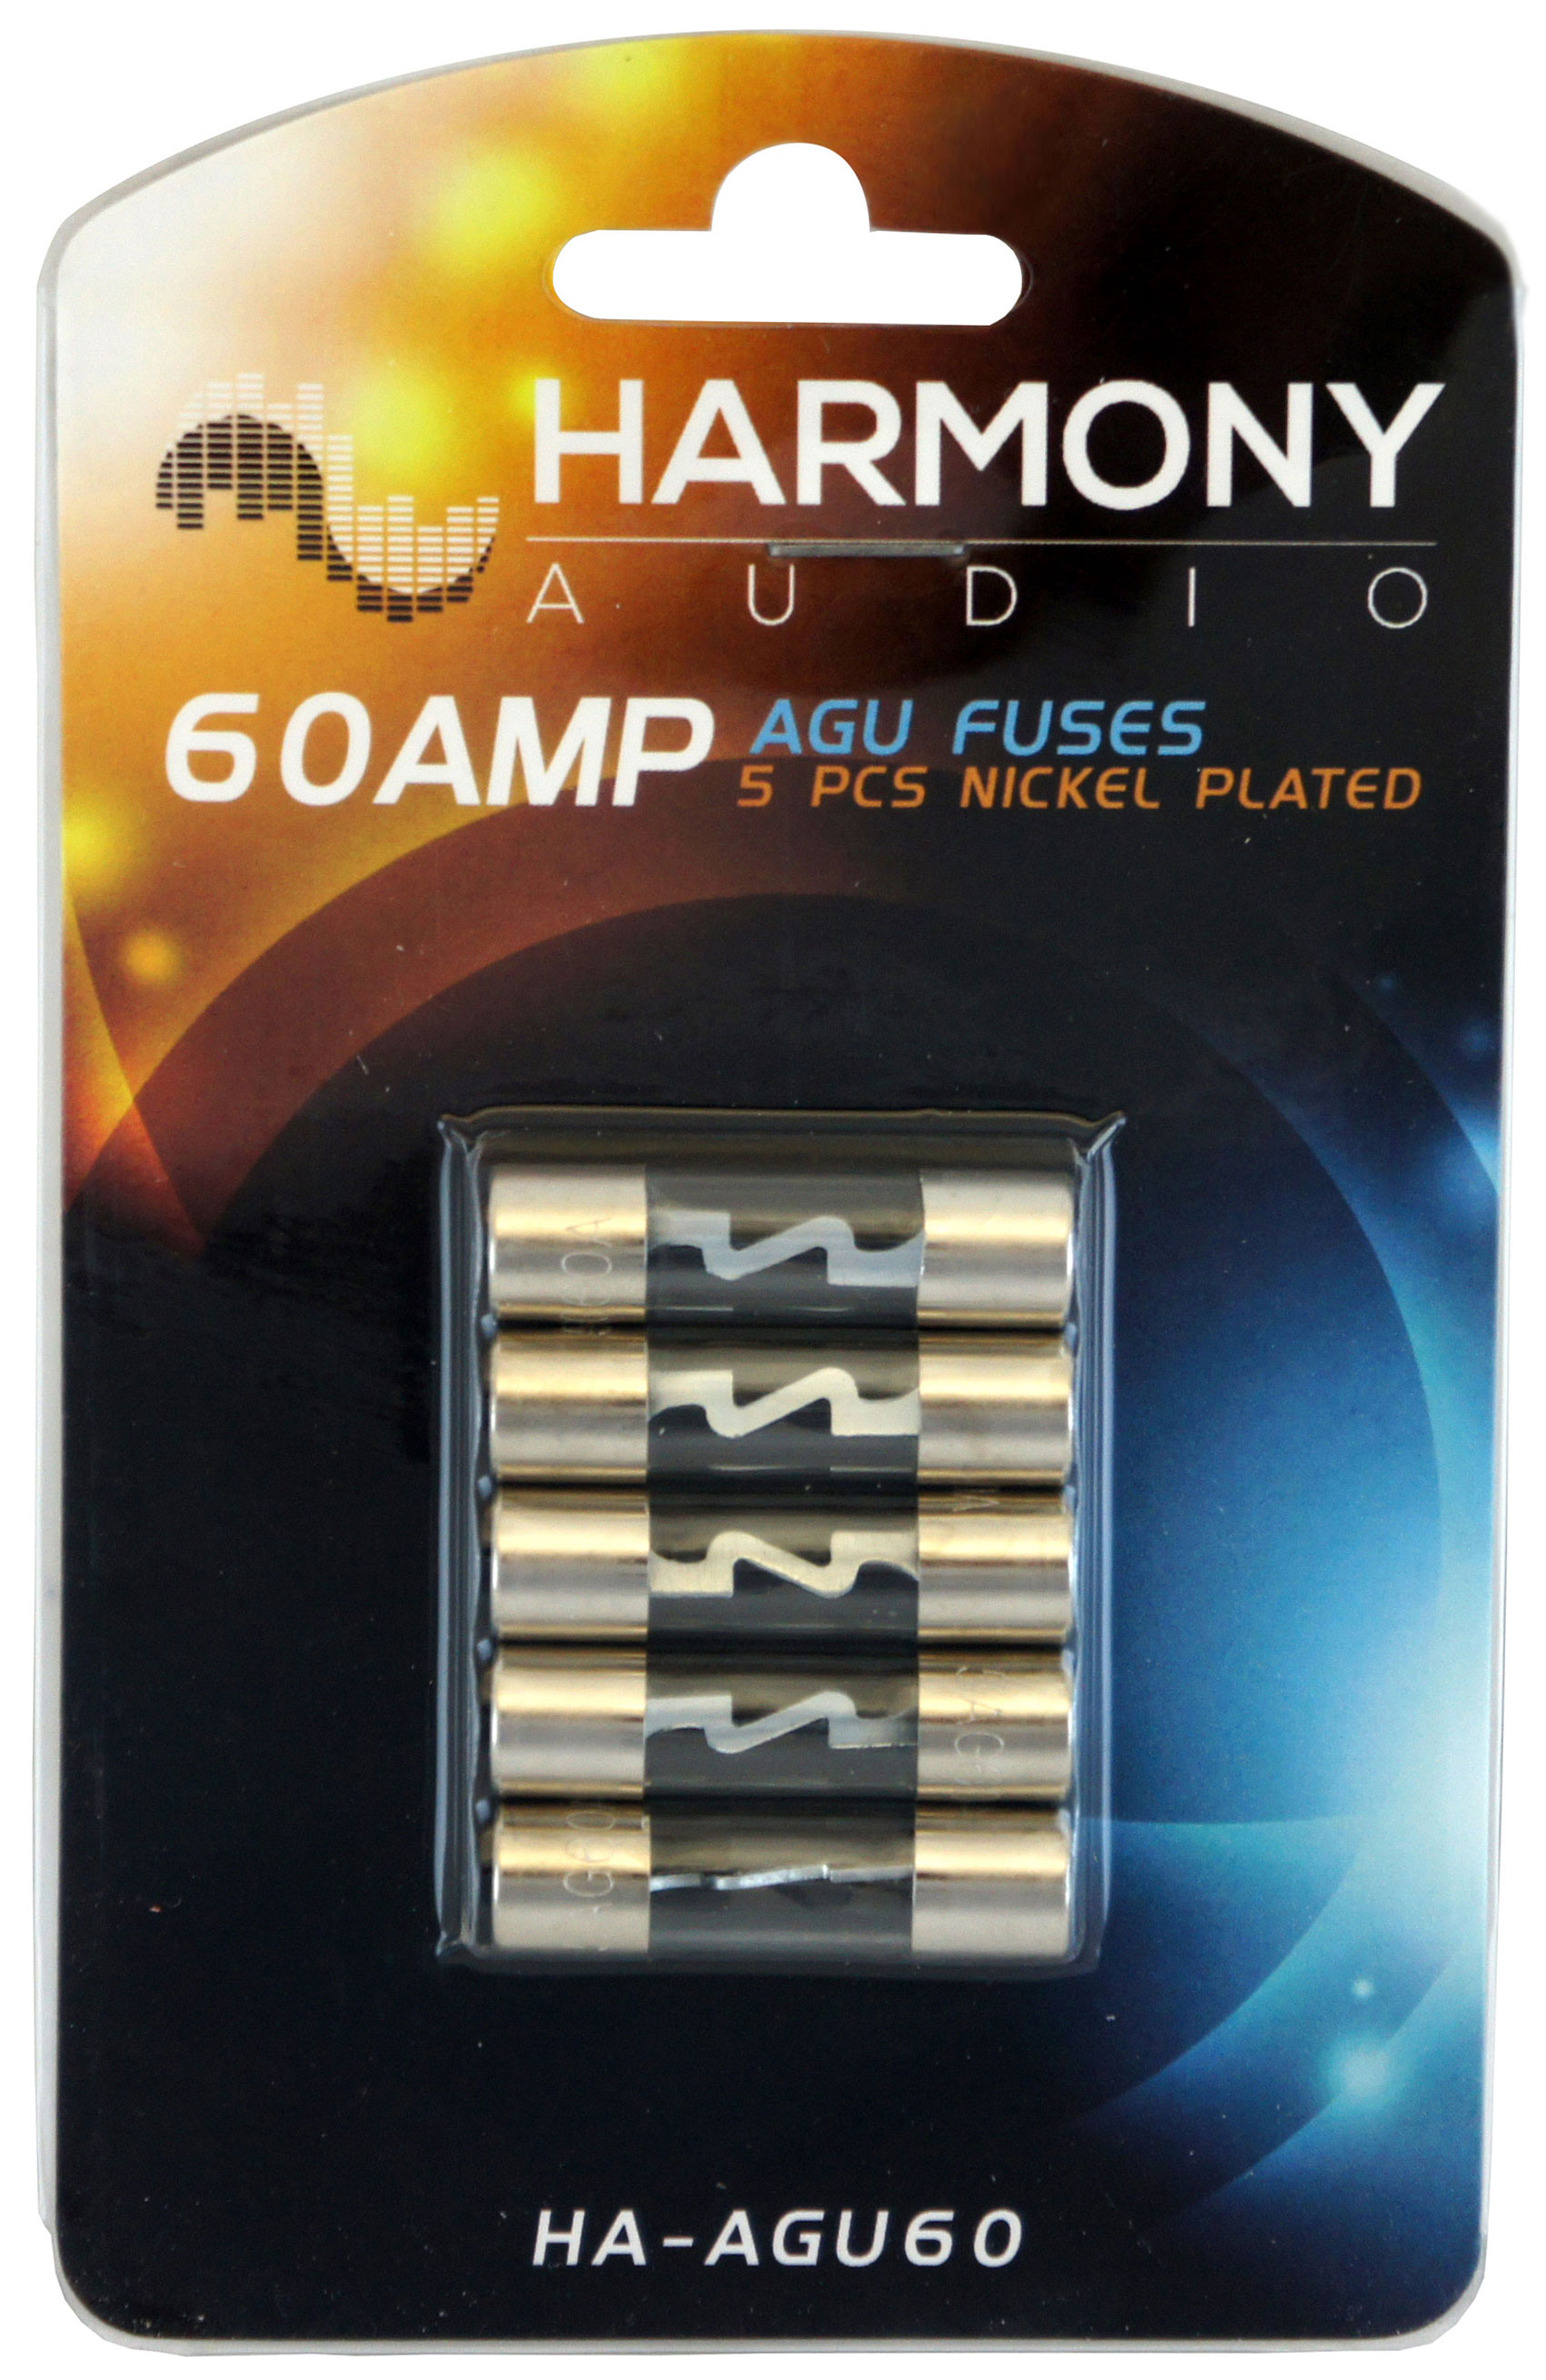 Fuses HA AGU60 detailed image 1 harmony audio ha agu60 car stereo fuseholder 5 pack 60 amp agu fuses